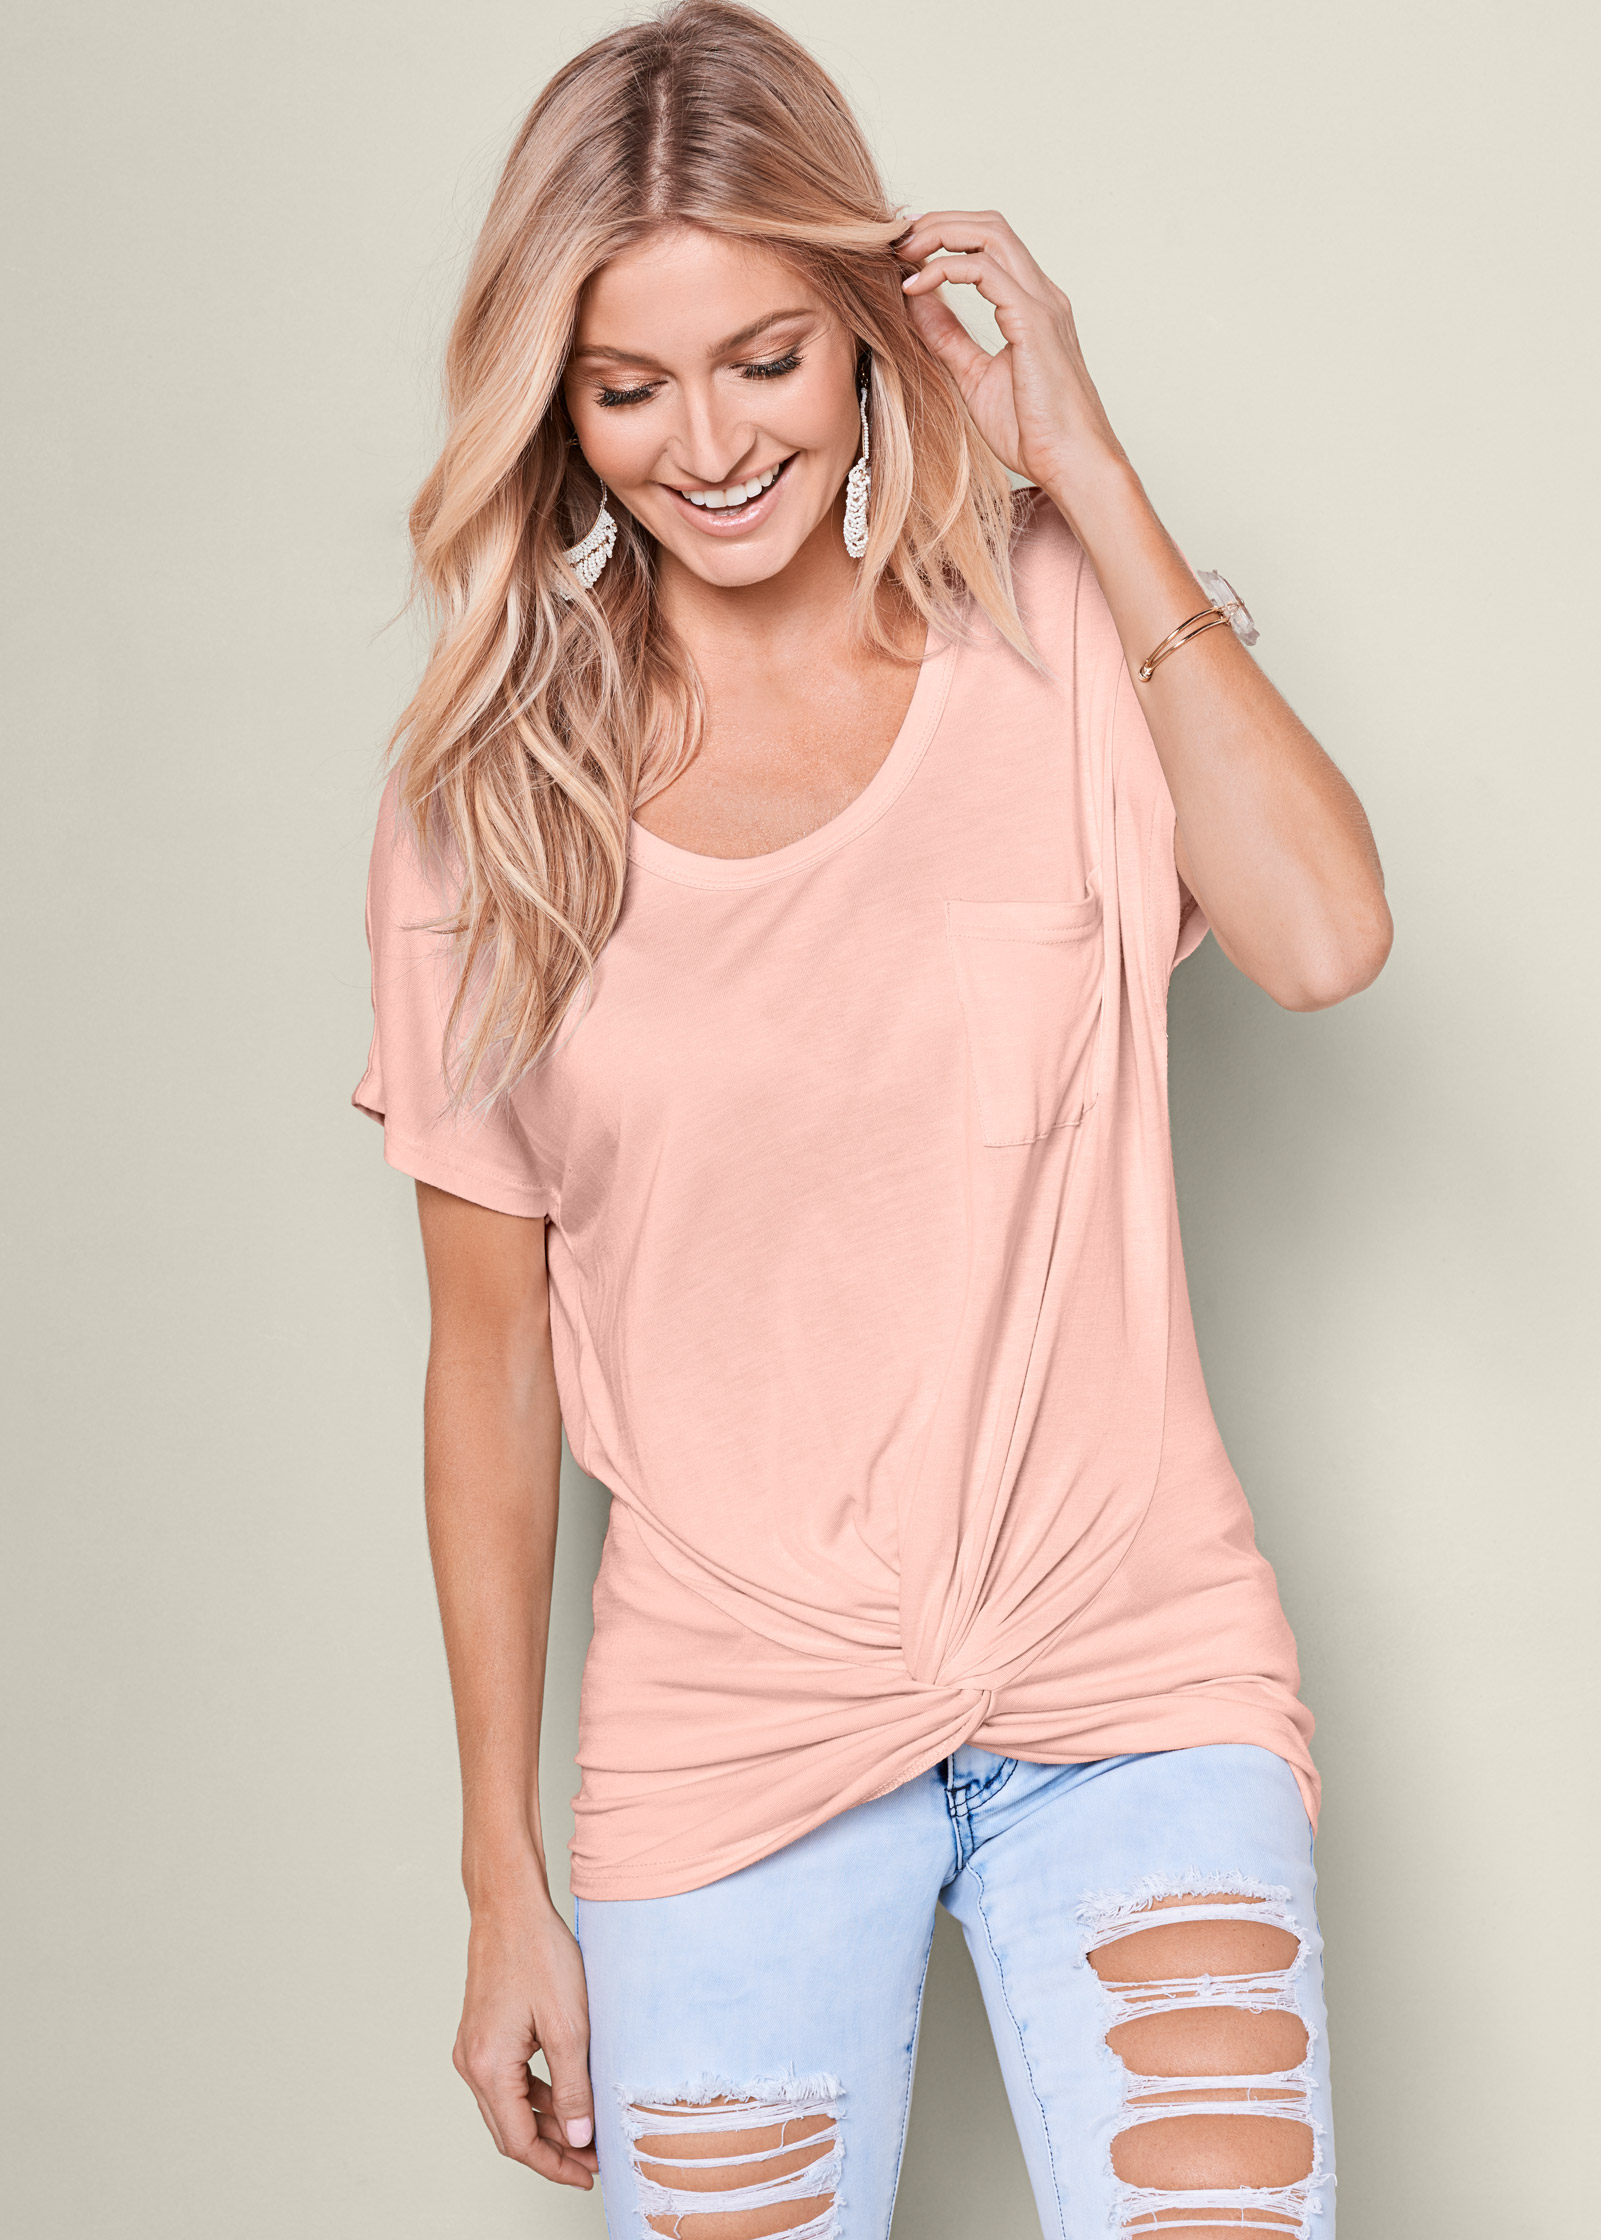 Discount Outlet Ost Release Dates Striped Top With Knot Front - Sea pink Pieces Sast Sale Online Buy Cheap 100% Original Free Shipping For Nice ZumhKVDQG